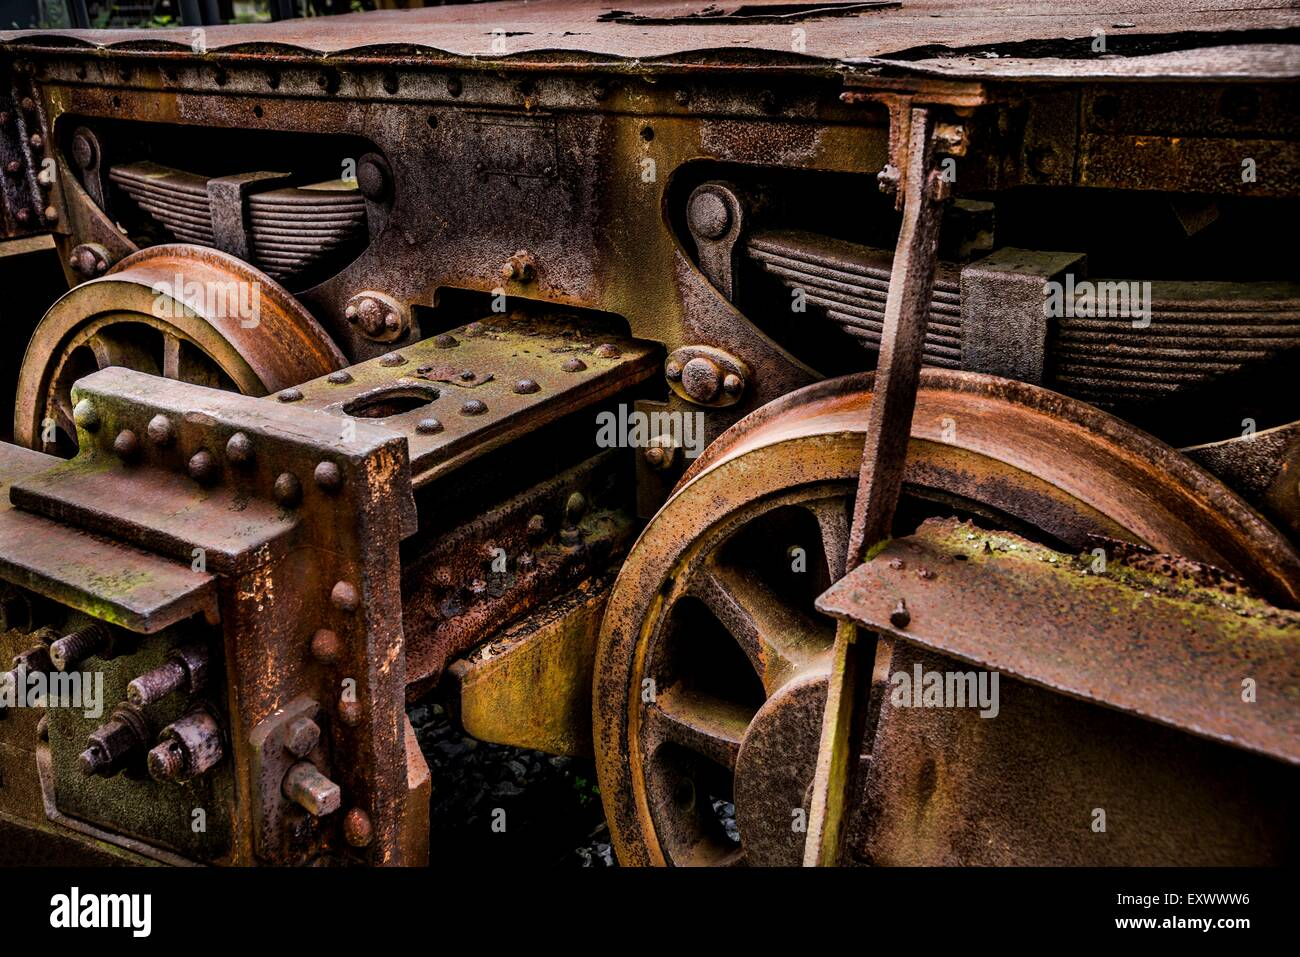 Wheels of a rail carriage - Stock Image